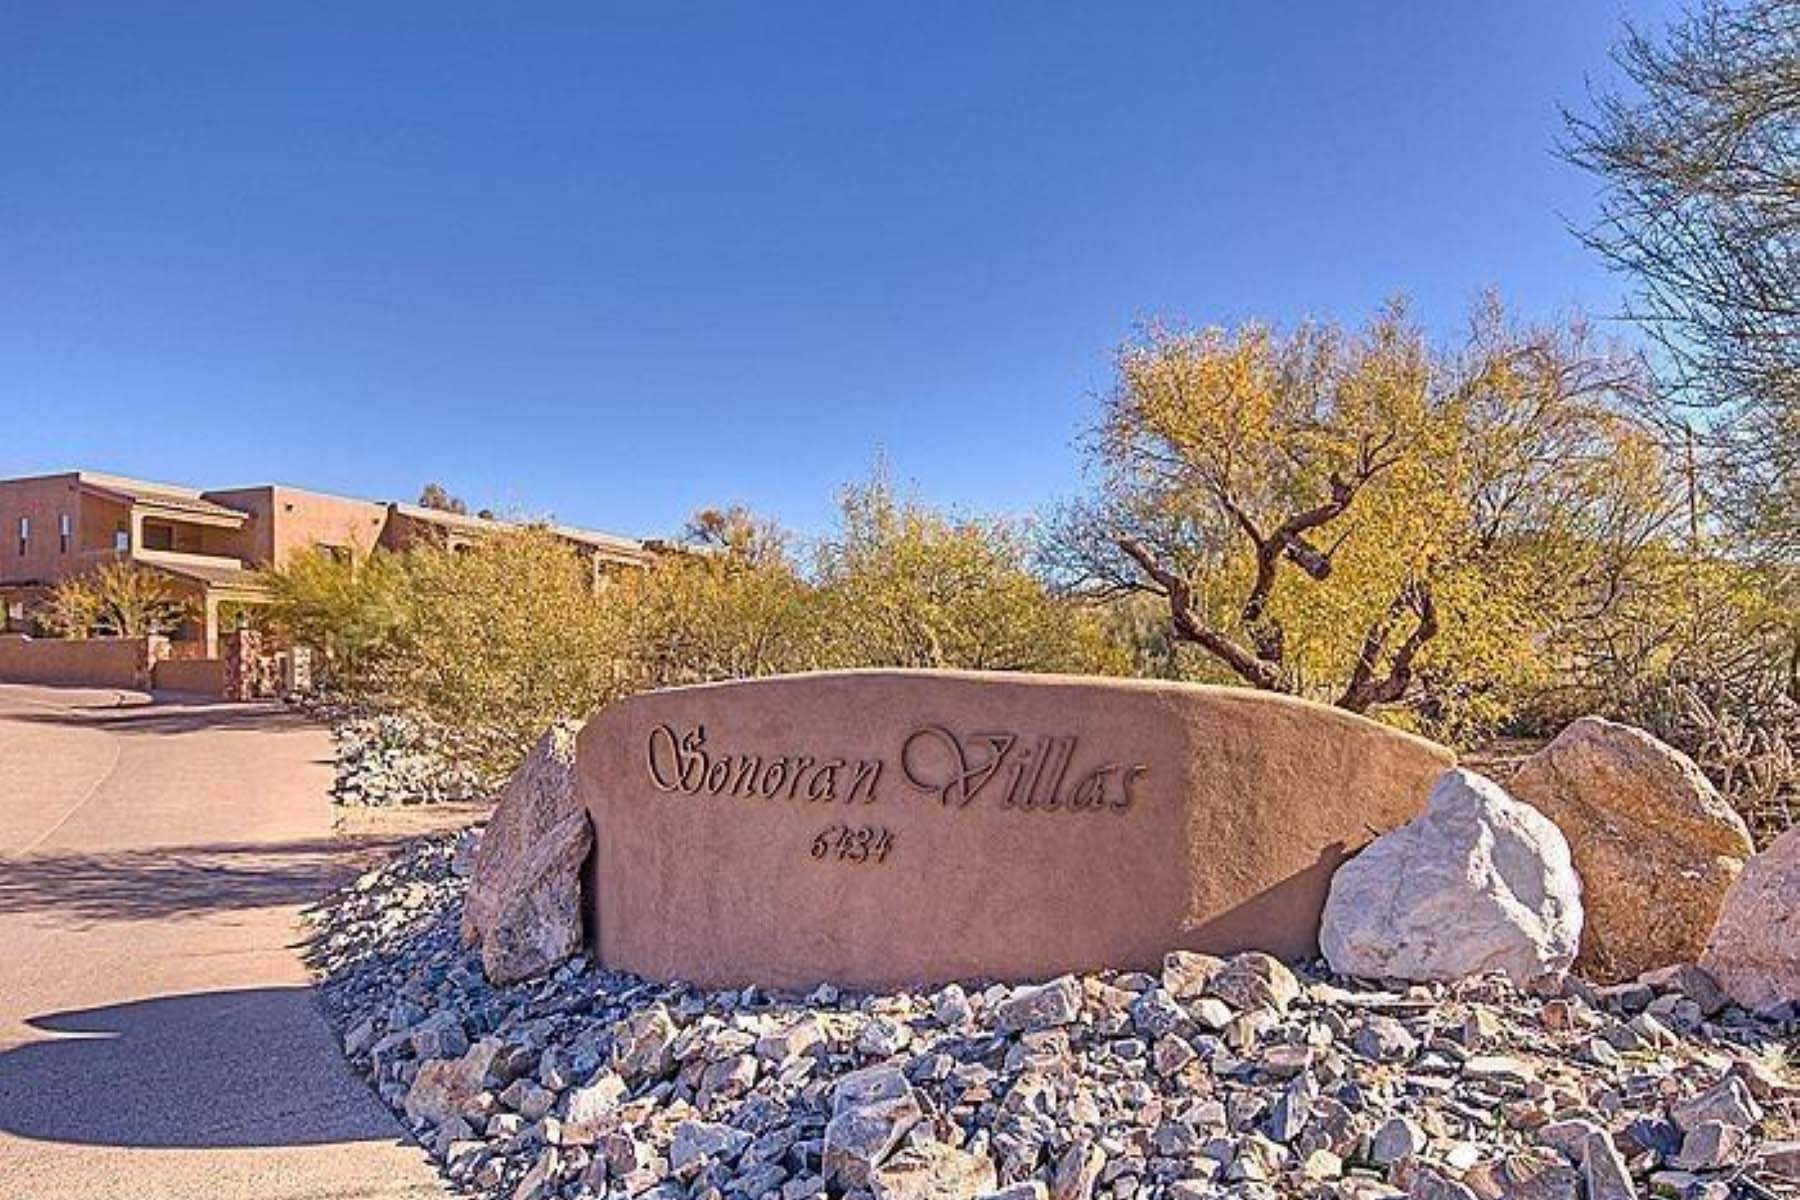 Property For Sale at Sonoran Villas at the base of Black Mountain.